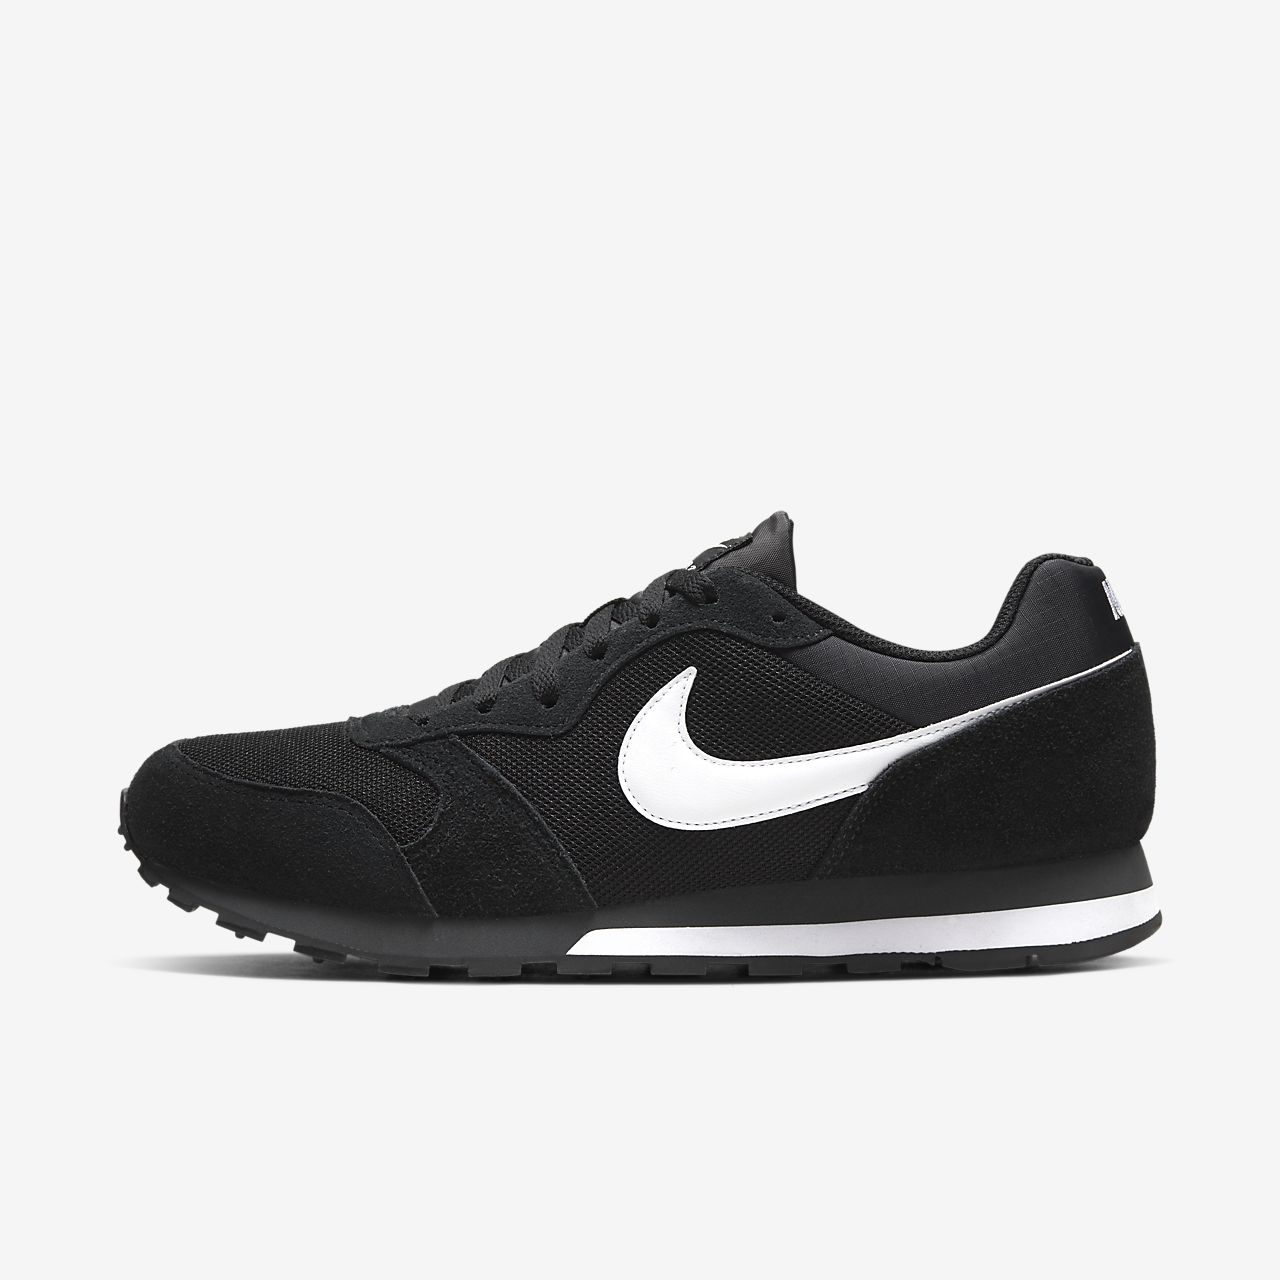 Low Resolution Nike MD Runner 2 Men's Shoe Nike MD Runner 2 Men's Shoe